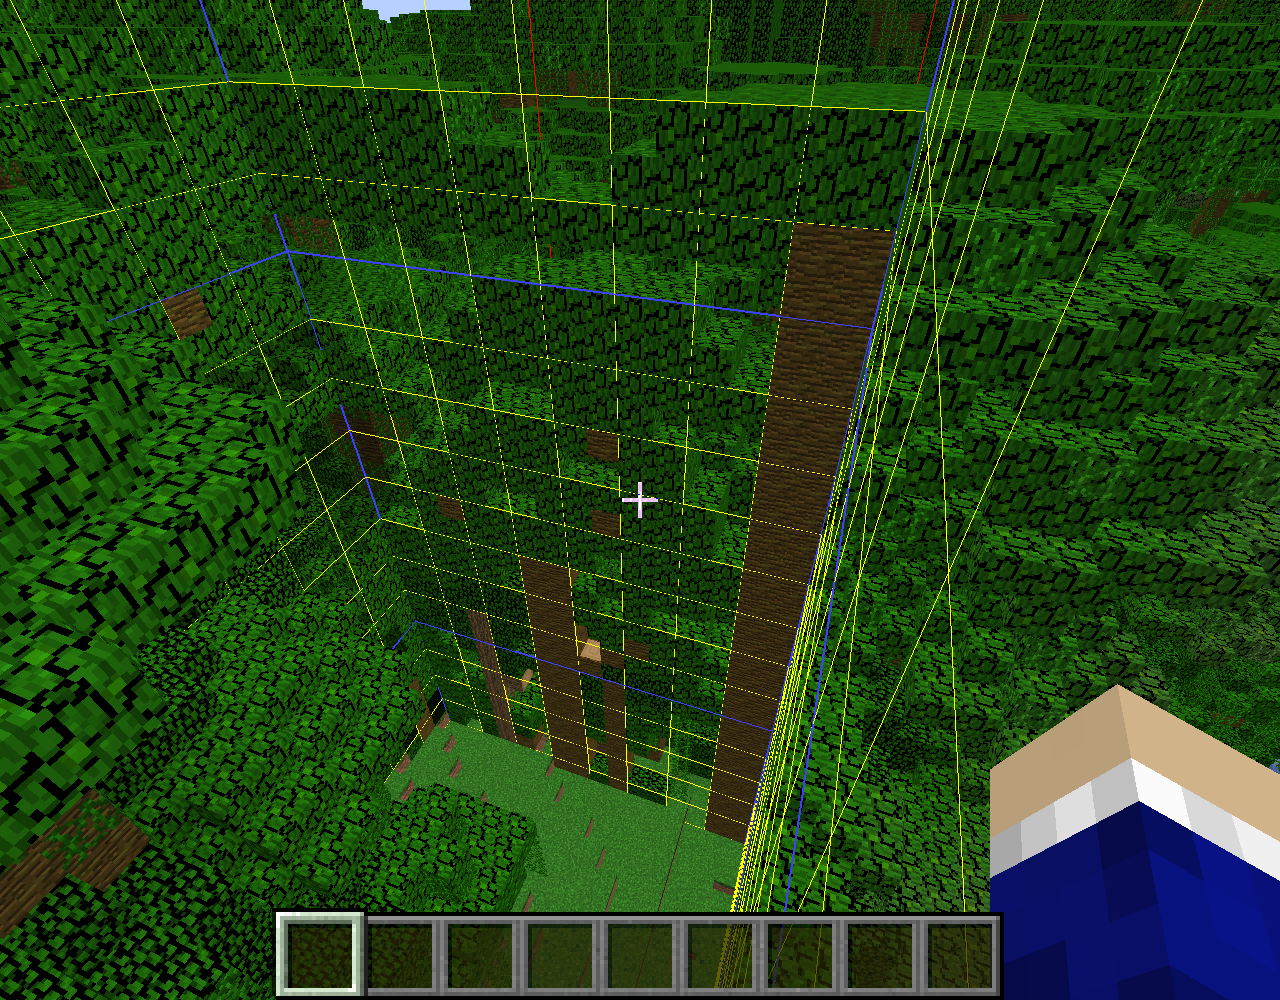 MC-128526] Jungle Trees split by chunk borders form only